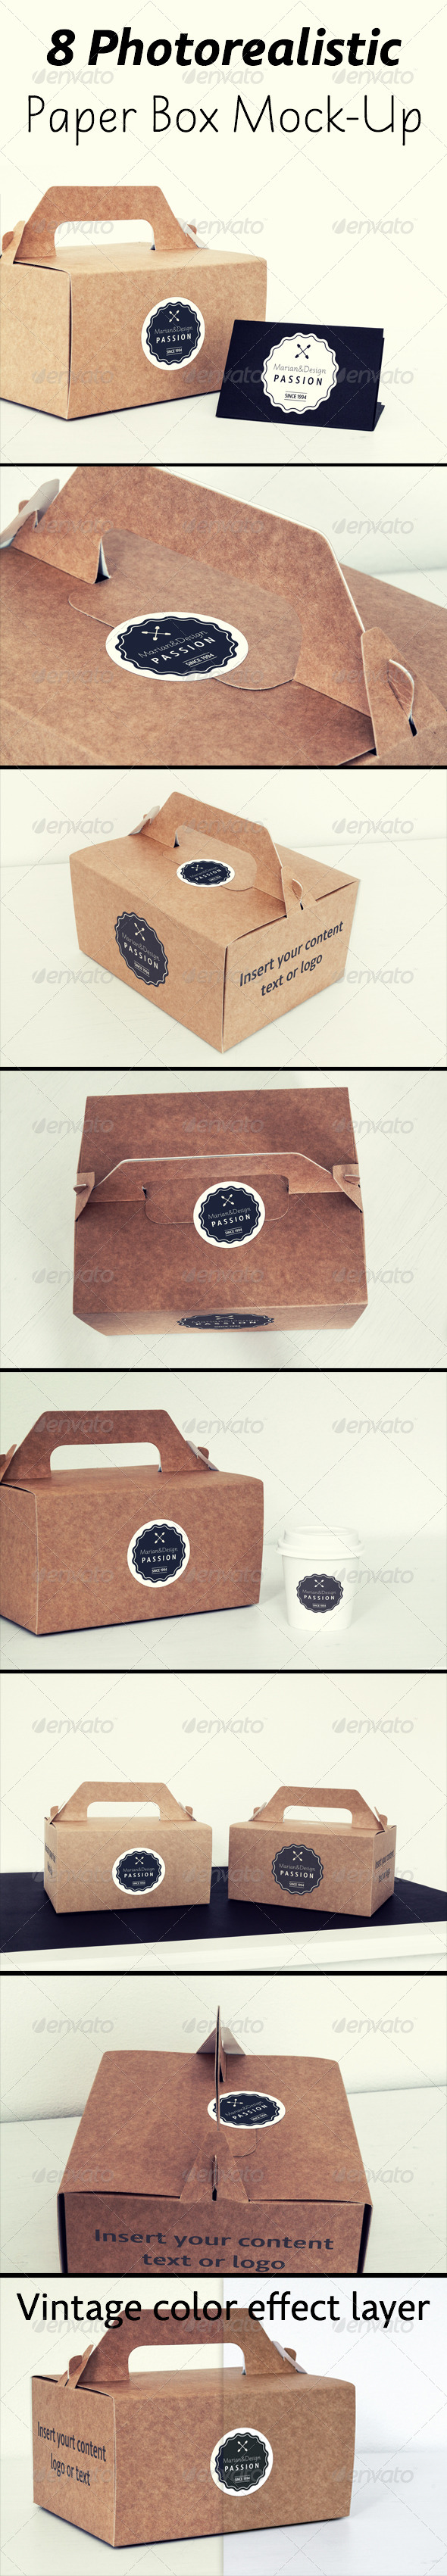 8 Photorealistic Paper Box & Logo Mock-Up